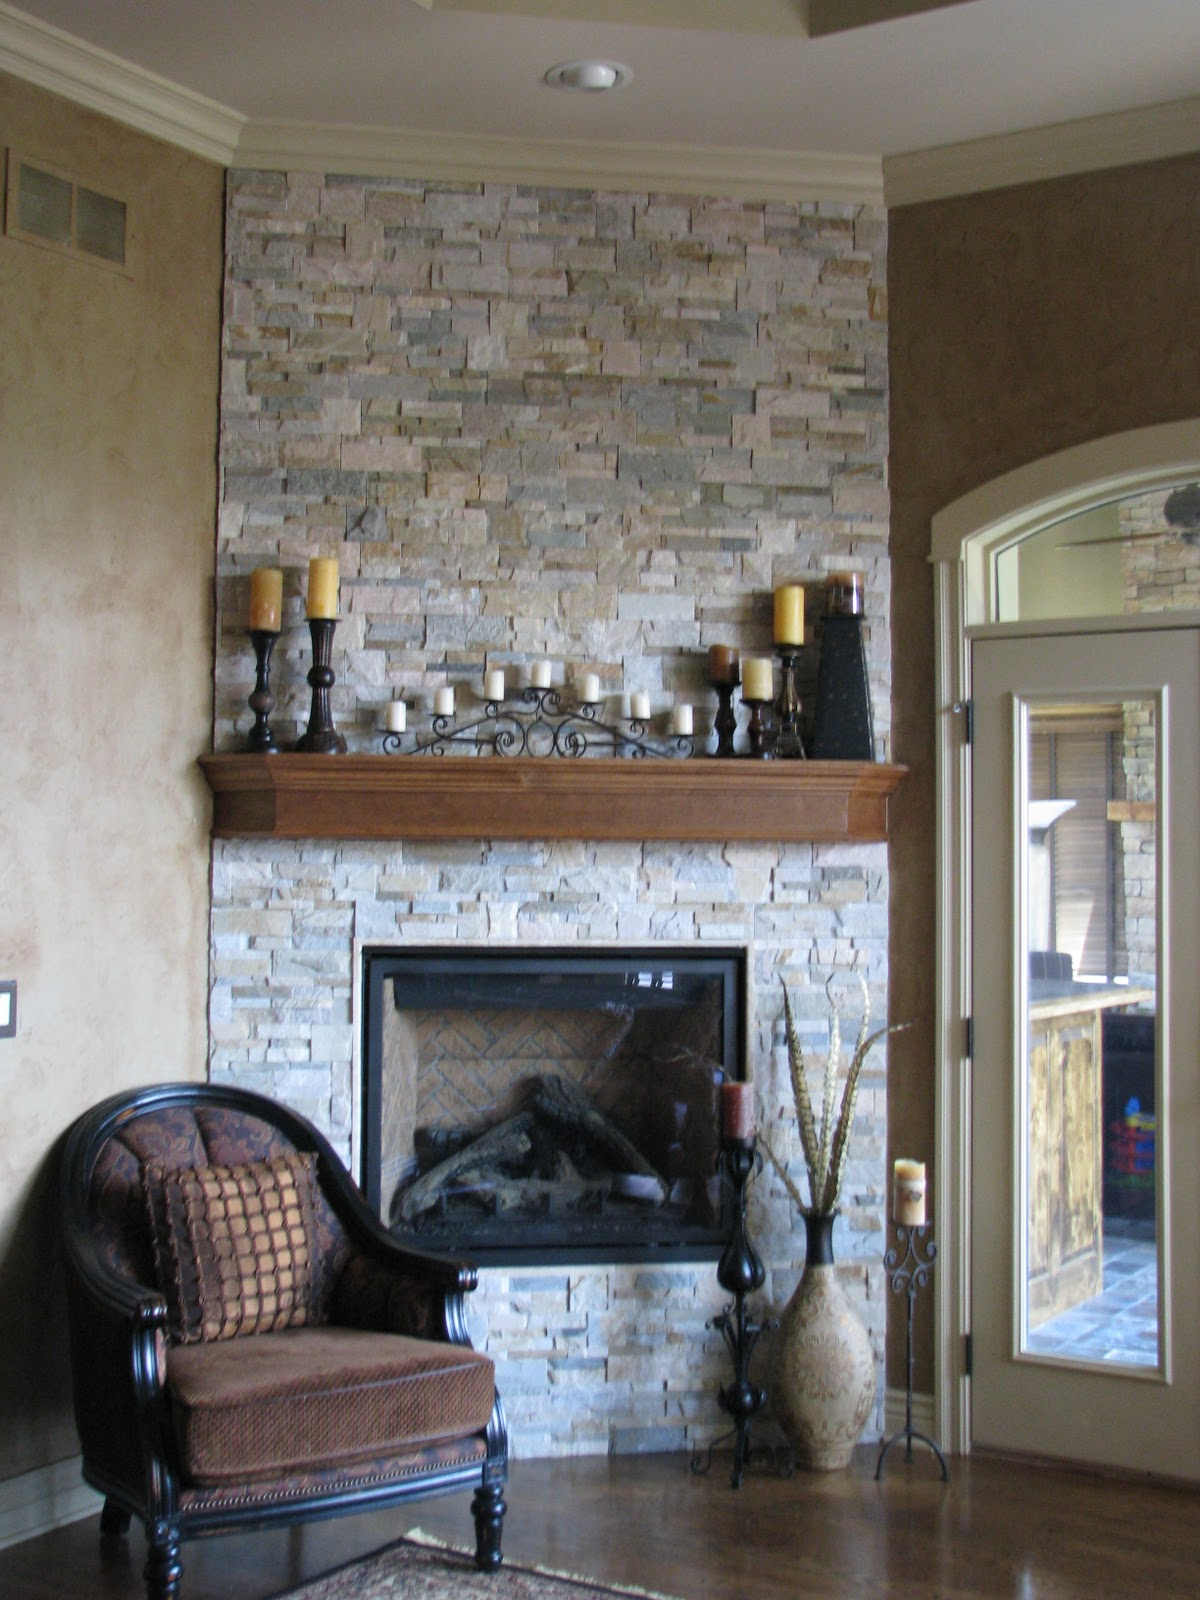 We Can Paint Stain Your Brick Stone Fireplace The Magic Brush Inc Jennifer Allwood